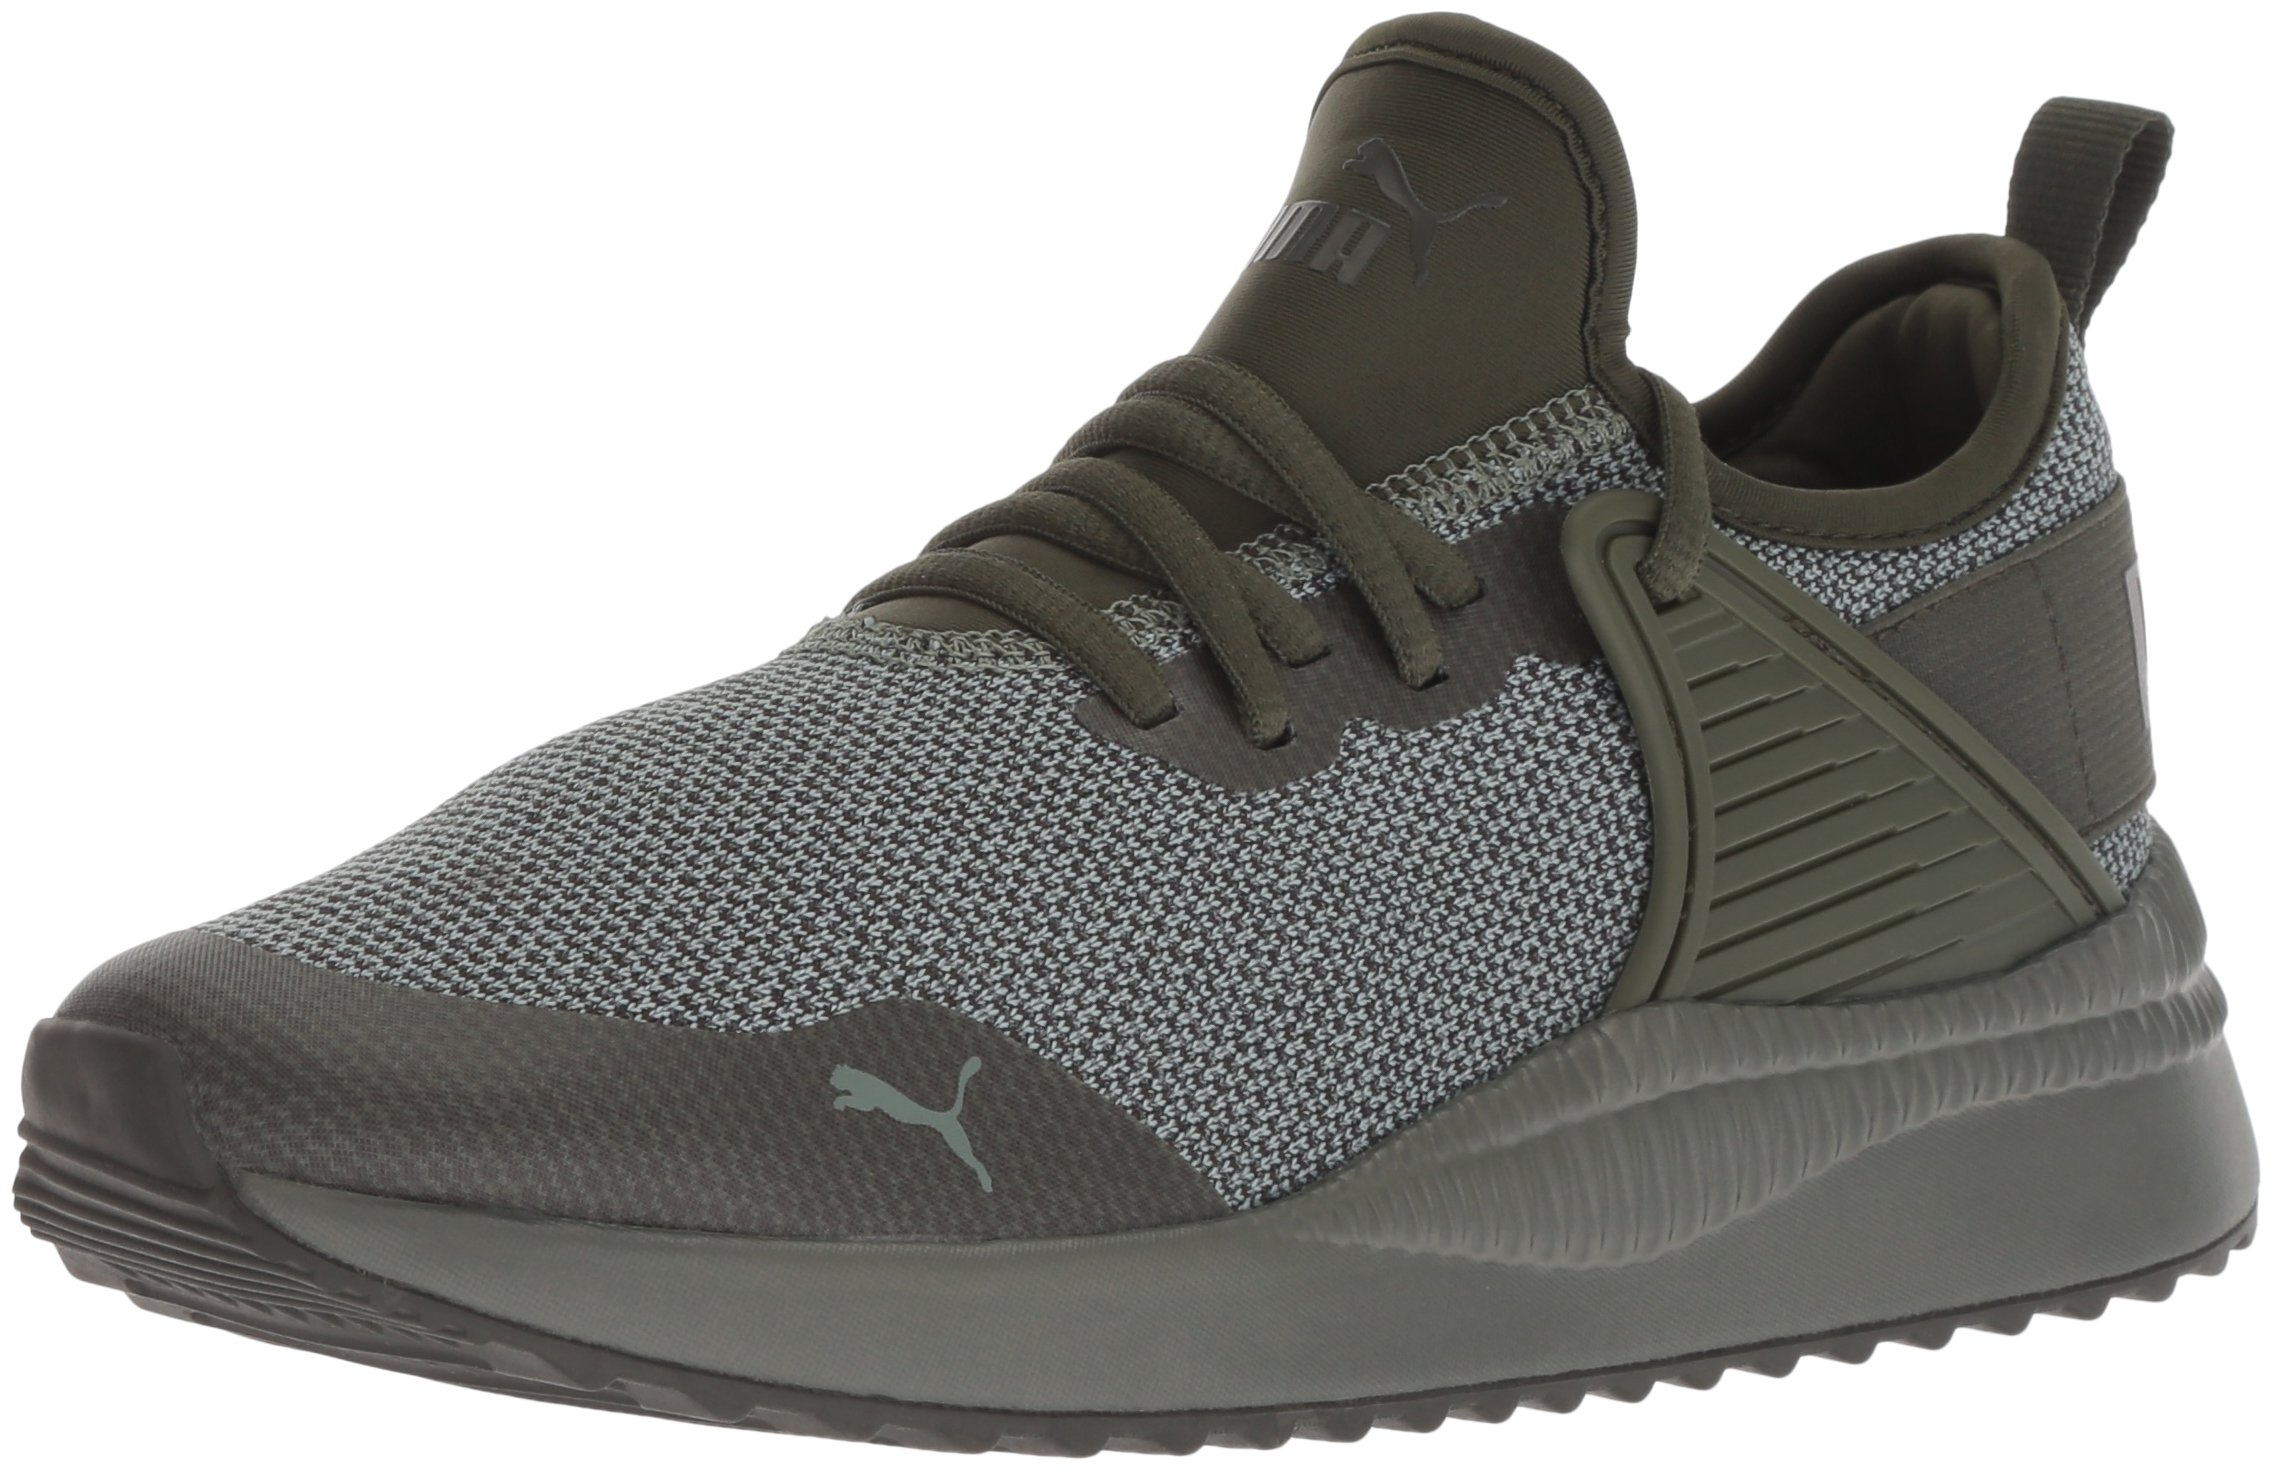 PUMA Unisex Pacer Next Cage Jr Sneaker, Forest